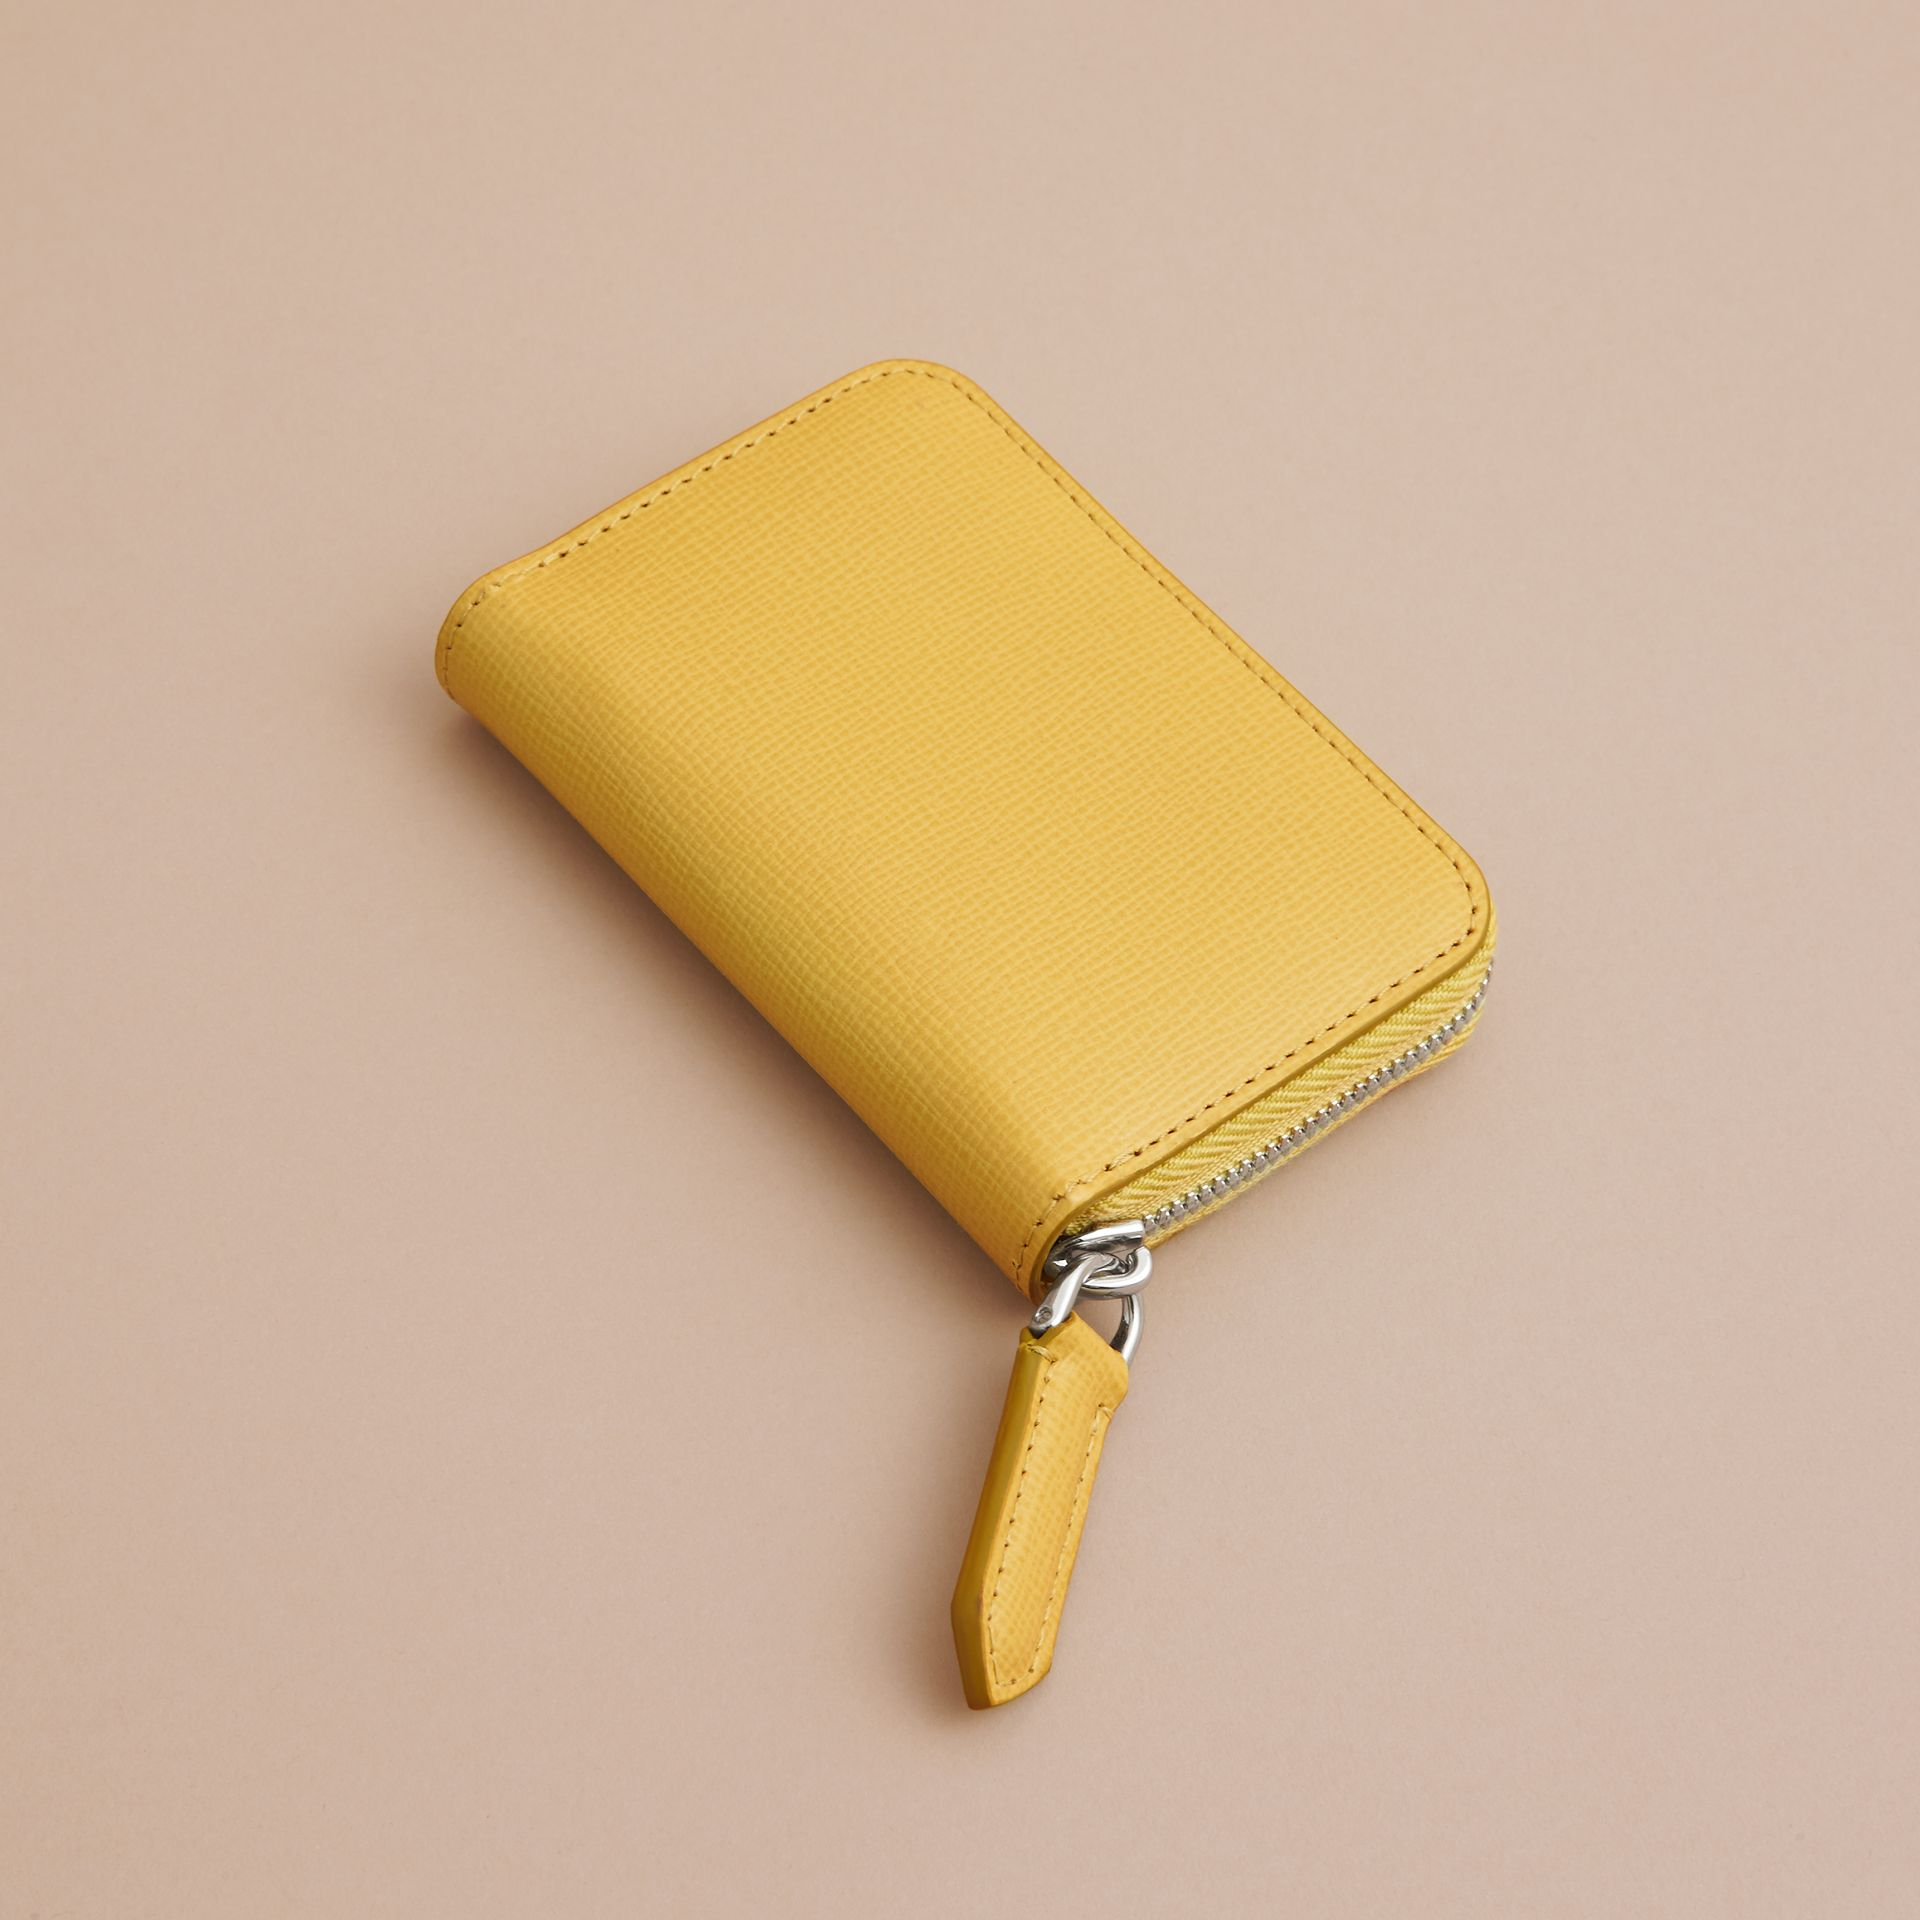 London Leather Ziparound Coin Case in Bright Citrus | Burberry - gallery image 3